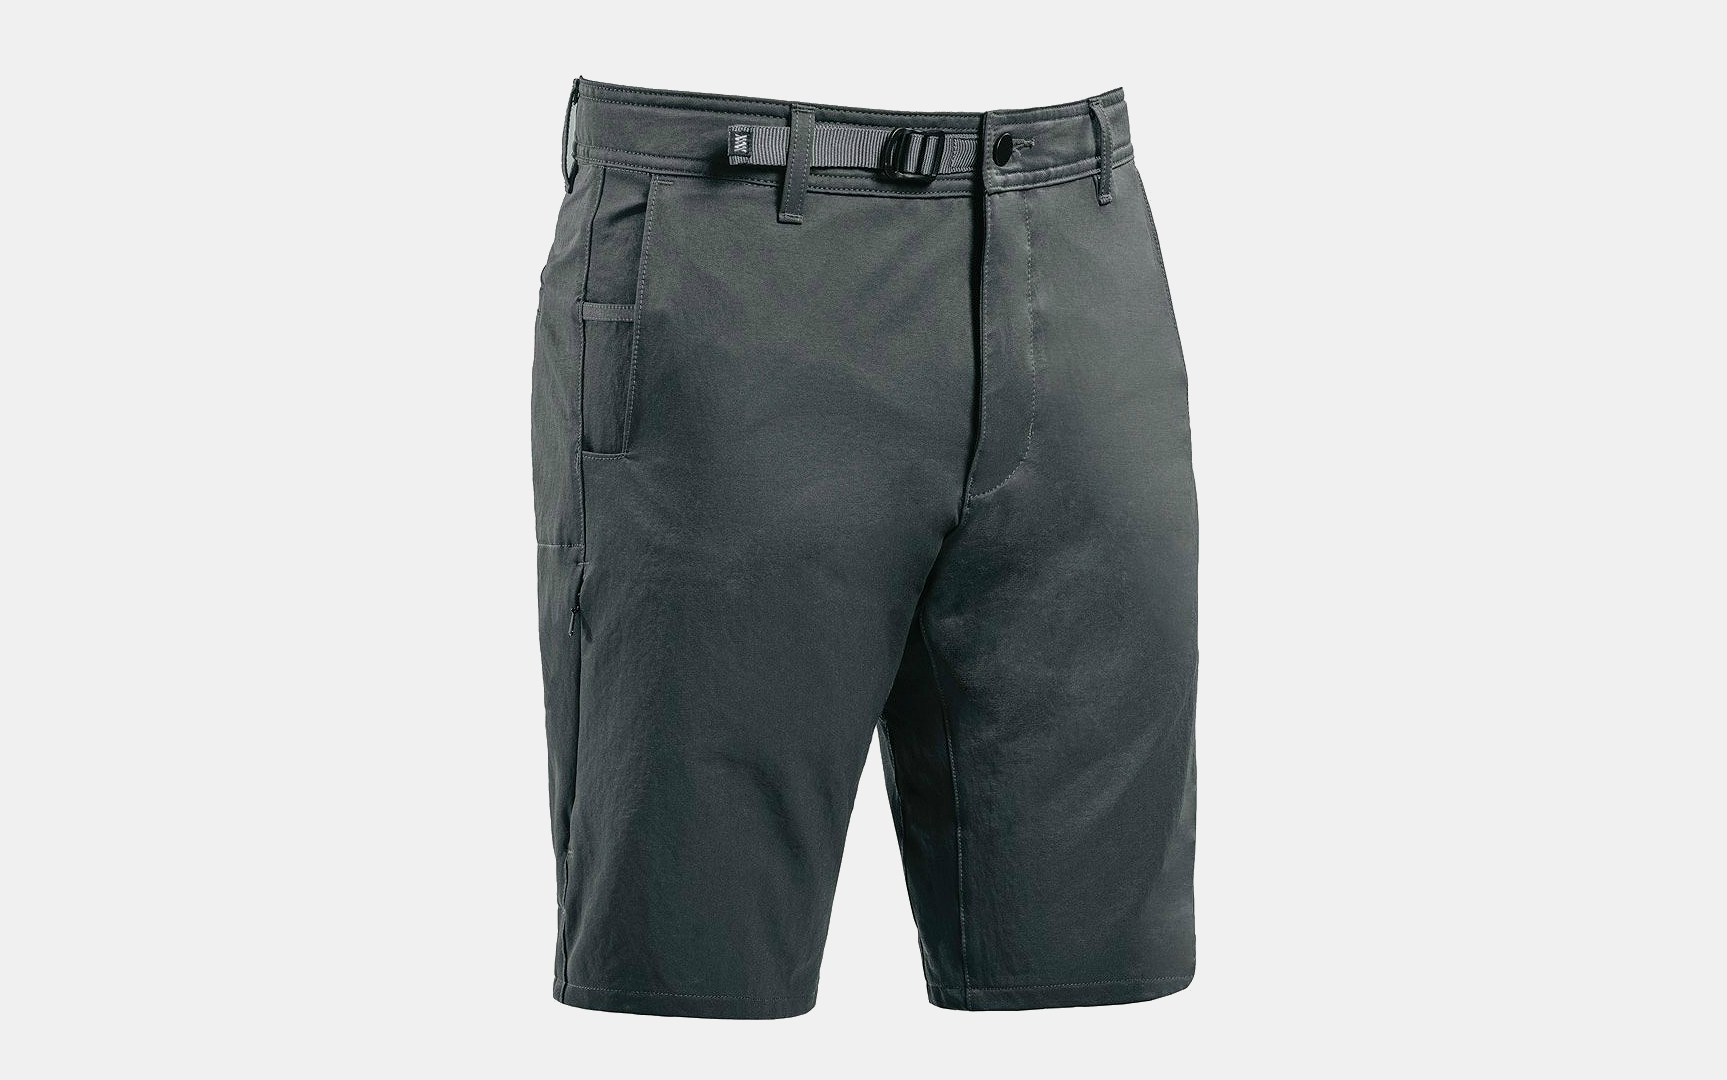 Mission Workshop Apoch All-Around Active Shorts